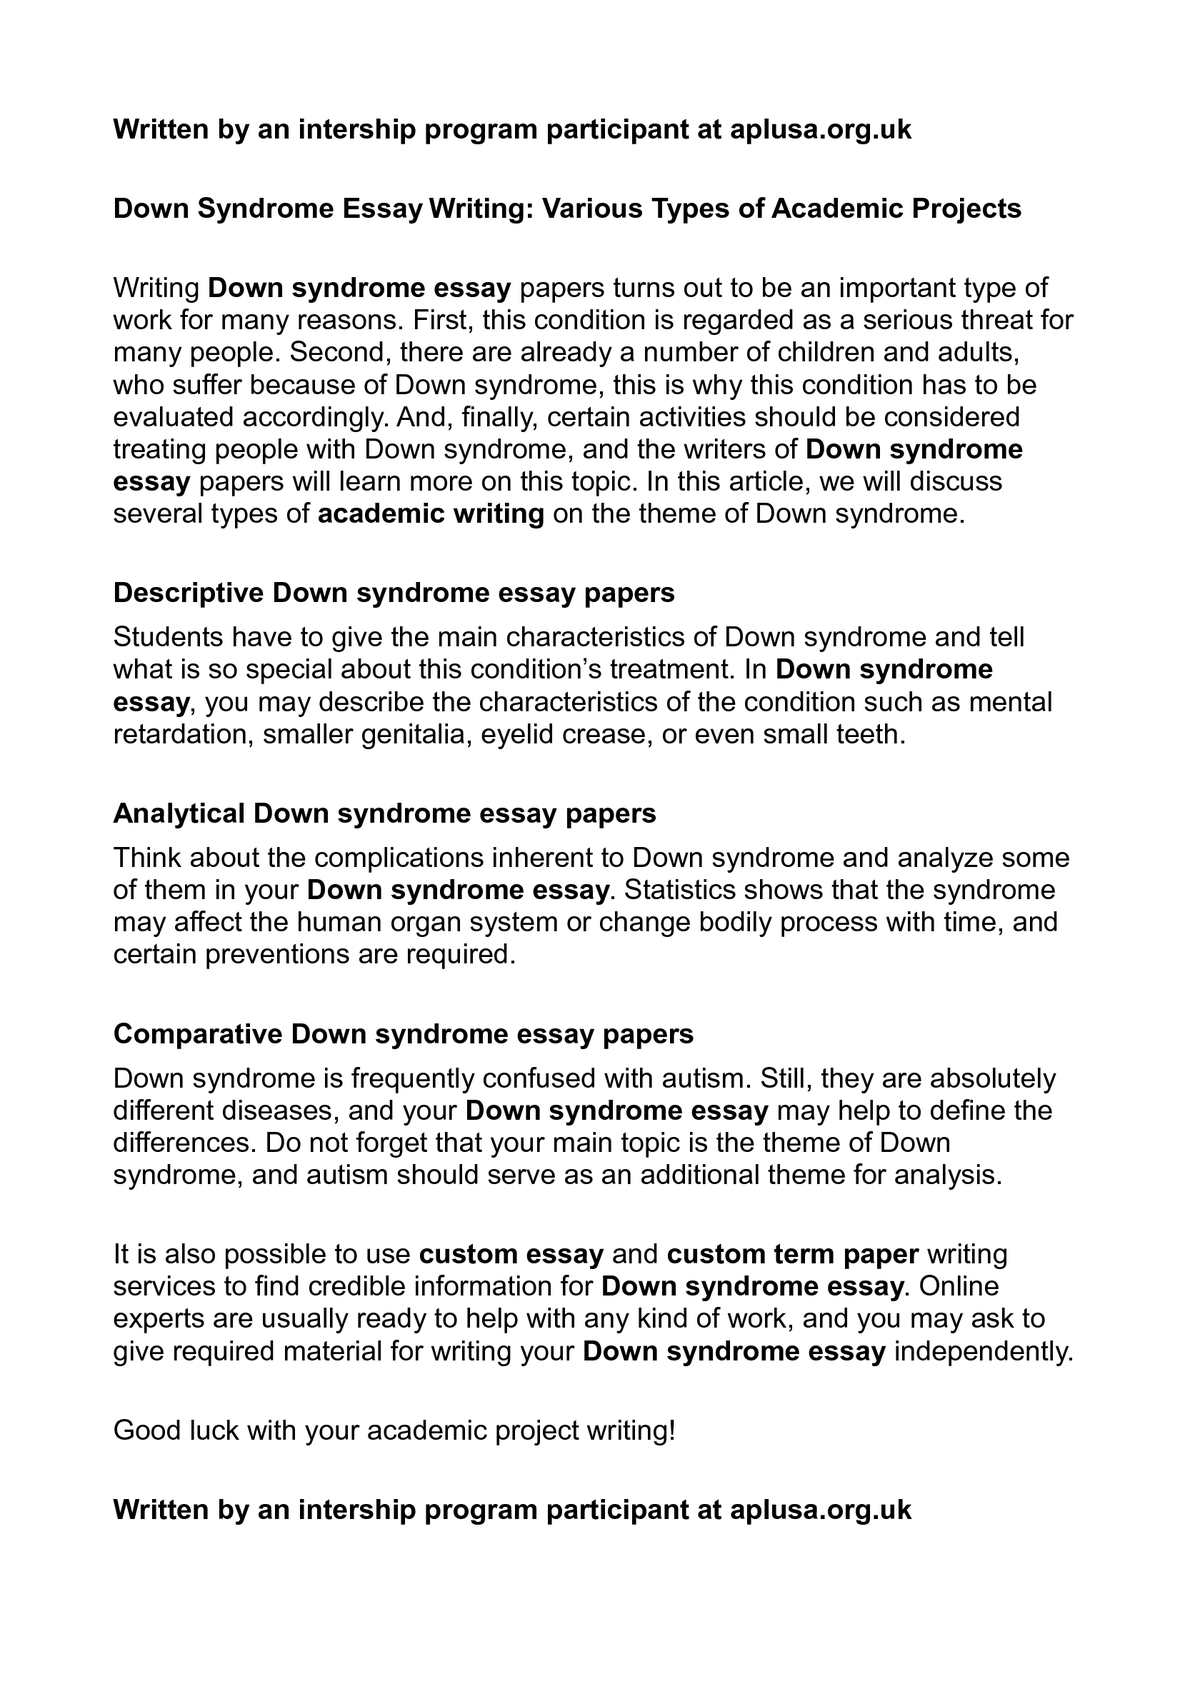 Essays On Health Care Reform Calamo  Down Syndrome Essay Writing Various Types Of Academic Projects Essay Writing Paper also High School Essays Examples Calamo  Down Syndrome Essay Writing Various Types Of Academic  What Is A Thesis Statement In An Essay